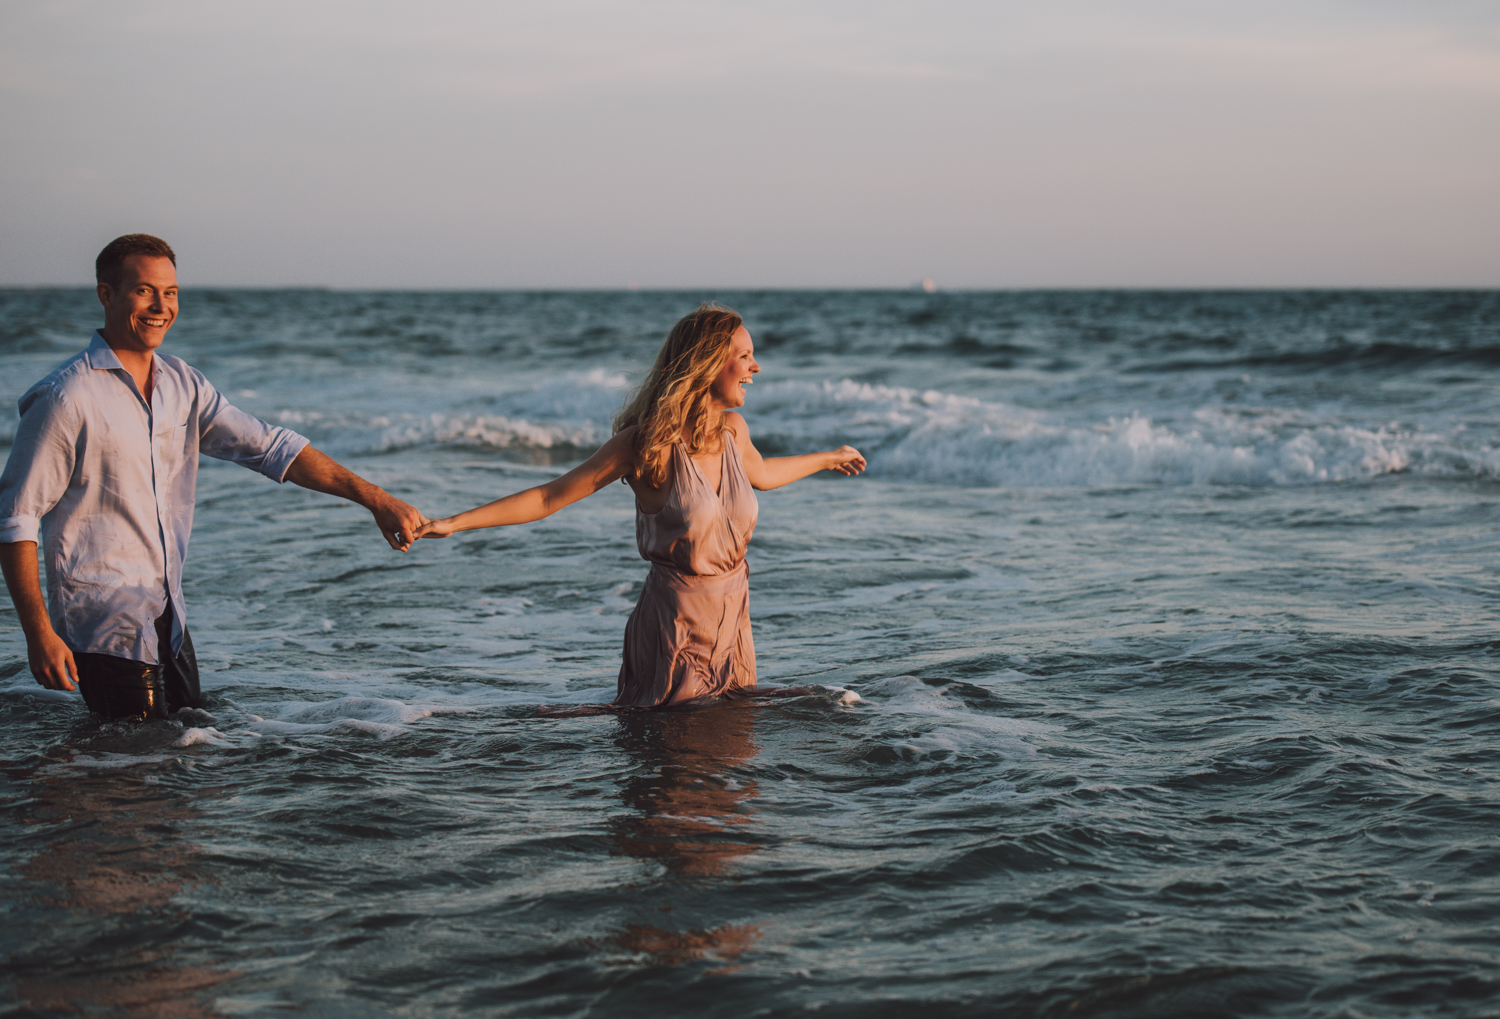 engagement_session_marthas_vineyard_DSC_4756.jpg